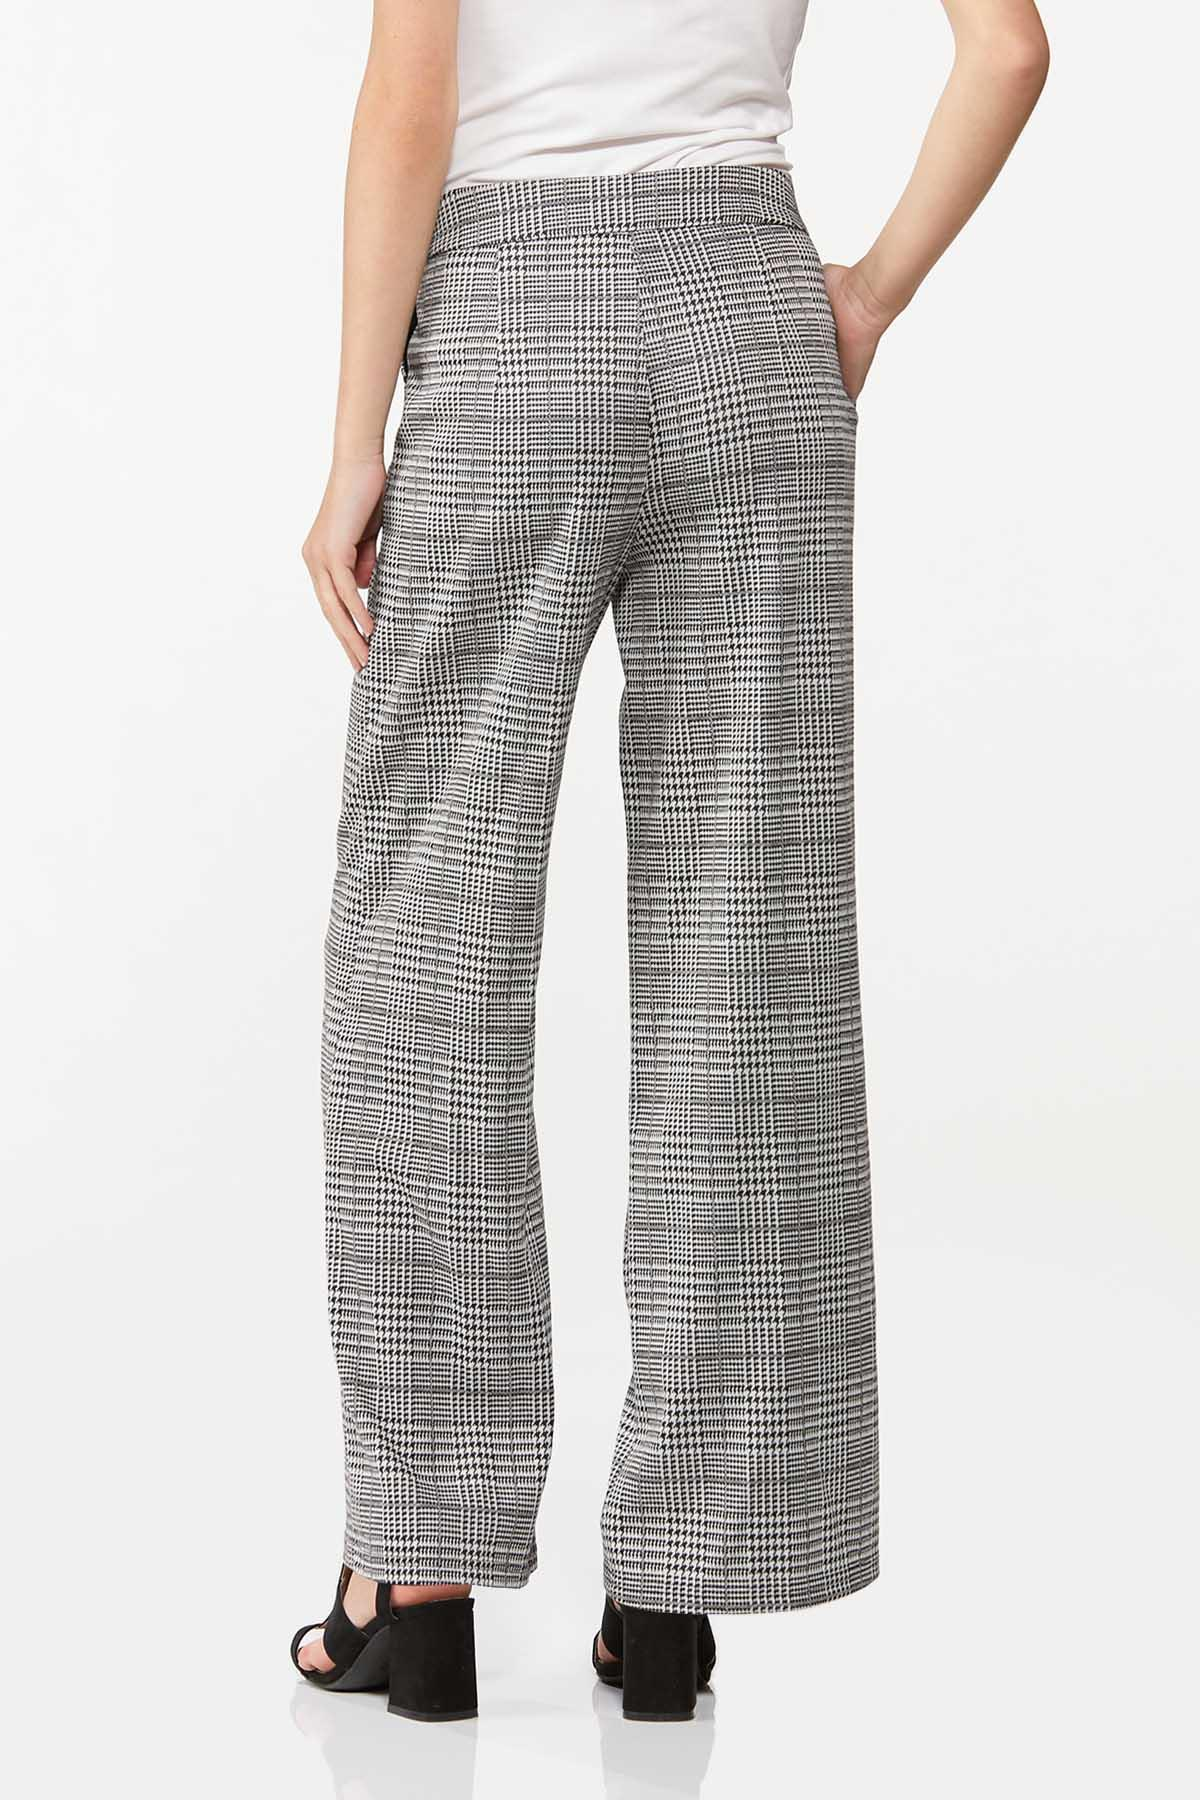 Houndstooth Pants (Item #44677261)